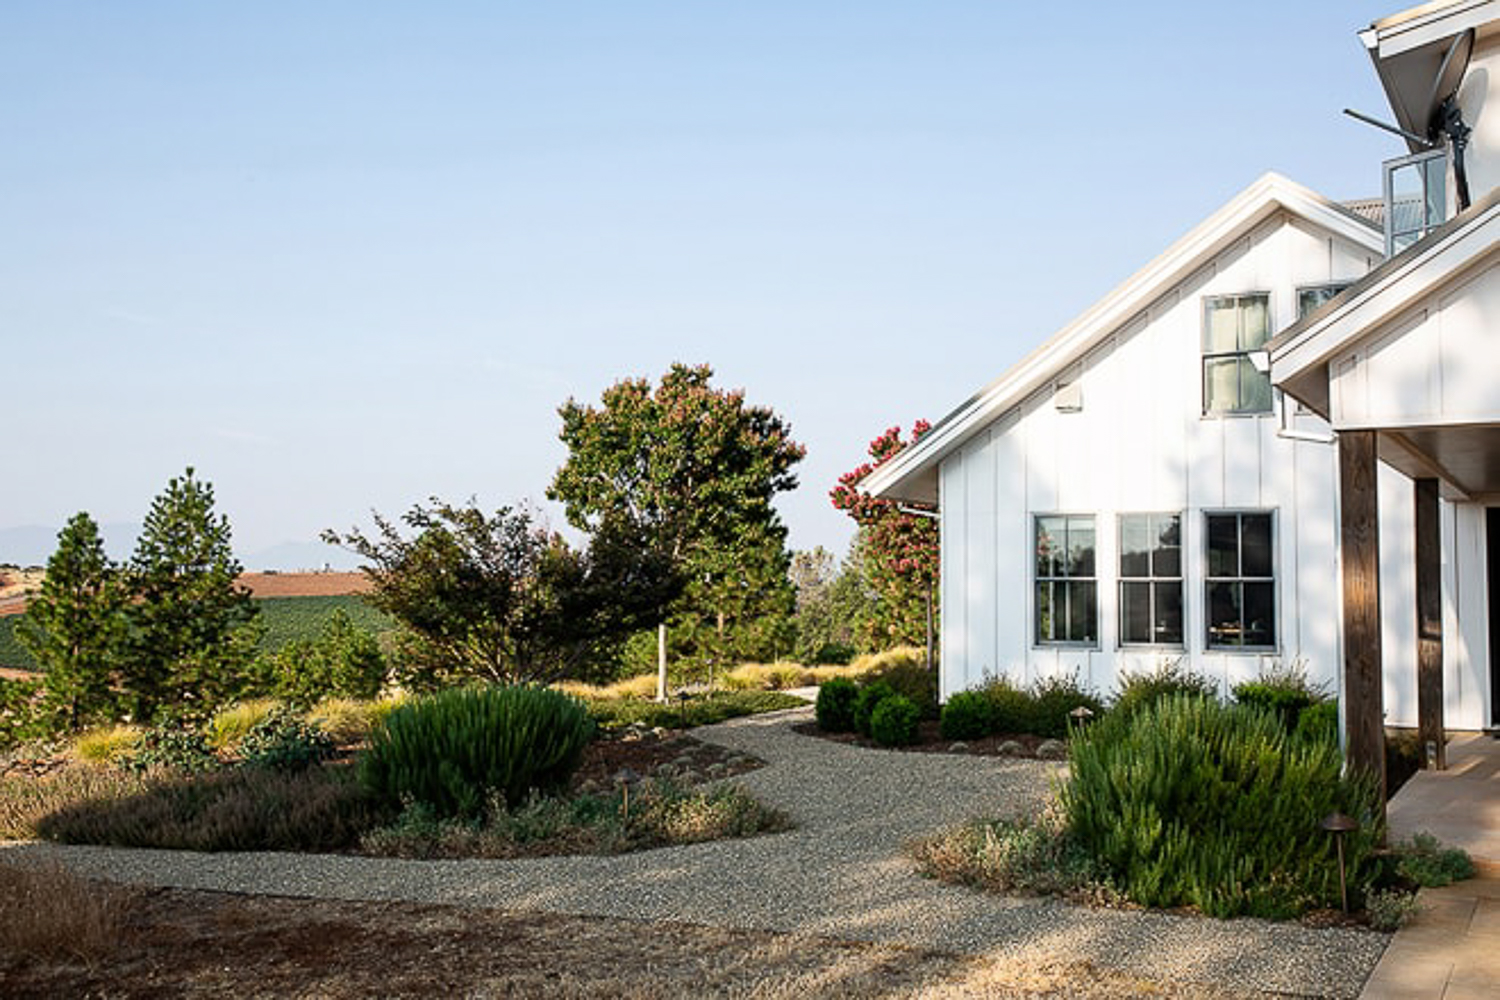 Landscape design photography, Sonoma residence with drought friendly landscape design.